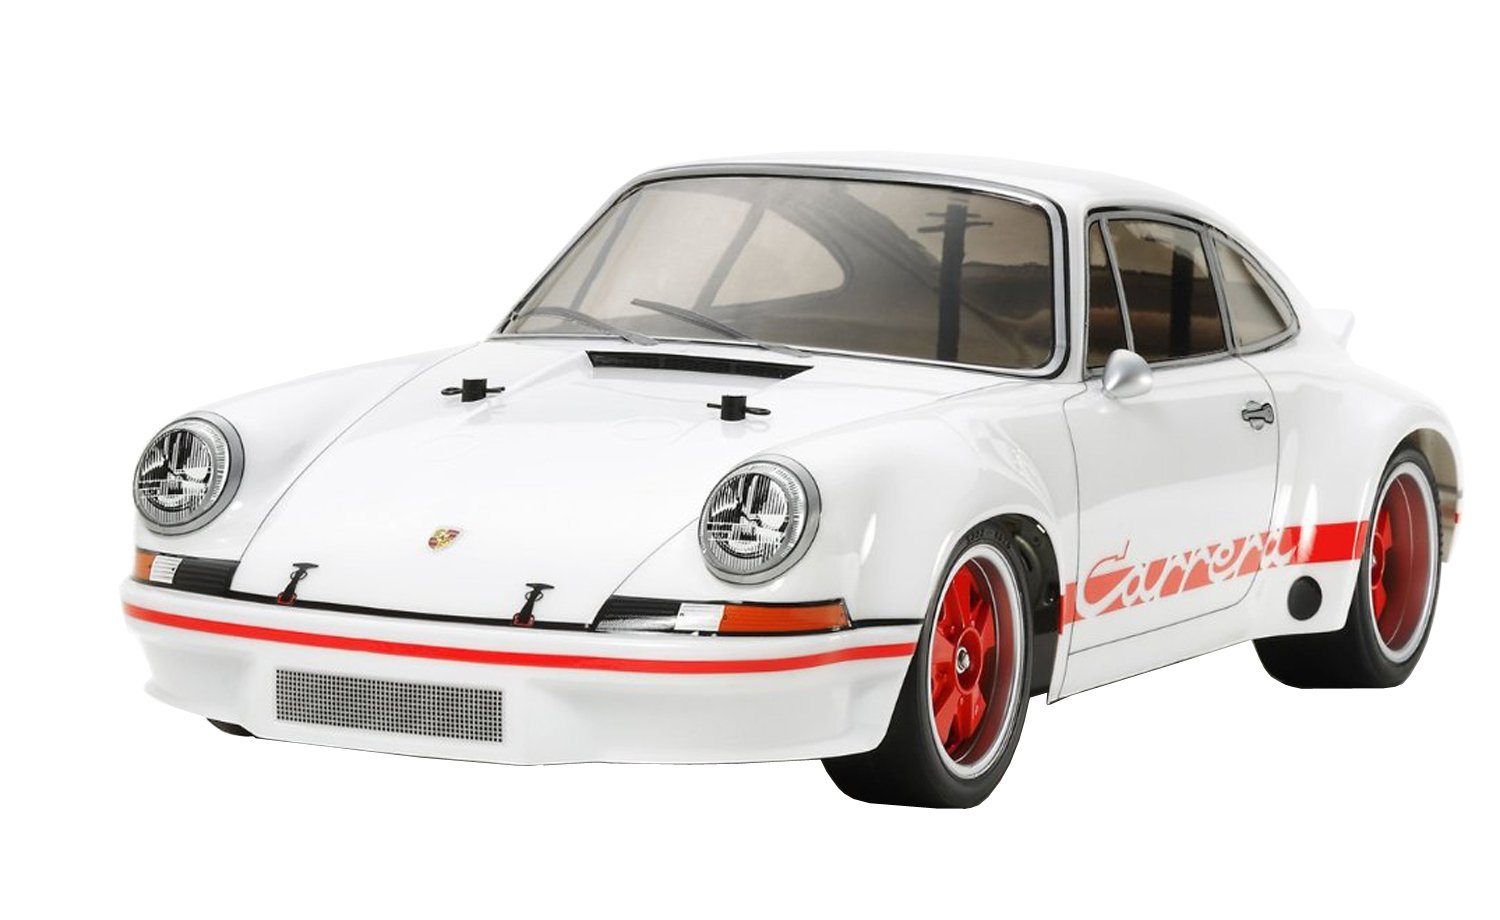 Amazon.com: 1/10 Xb Series No.174 Xb Porsche 911 Carrera Rsr ...